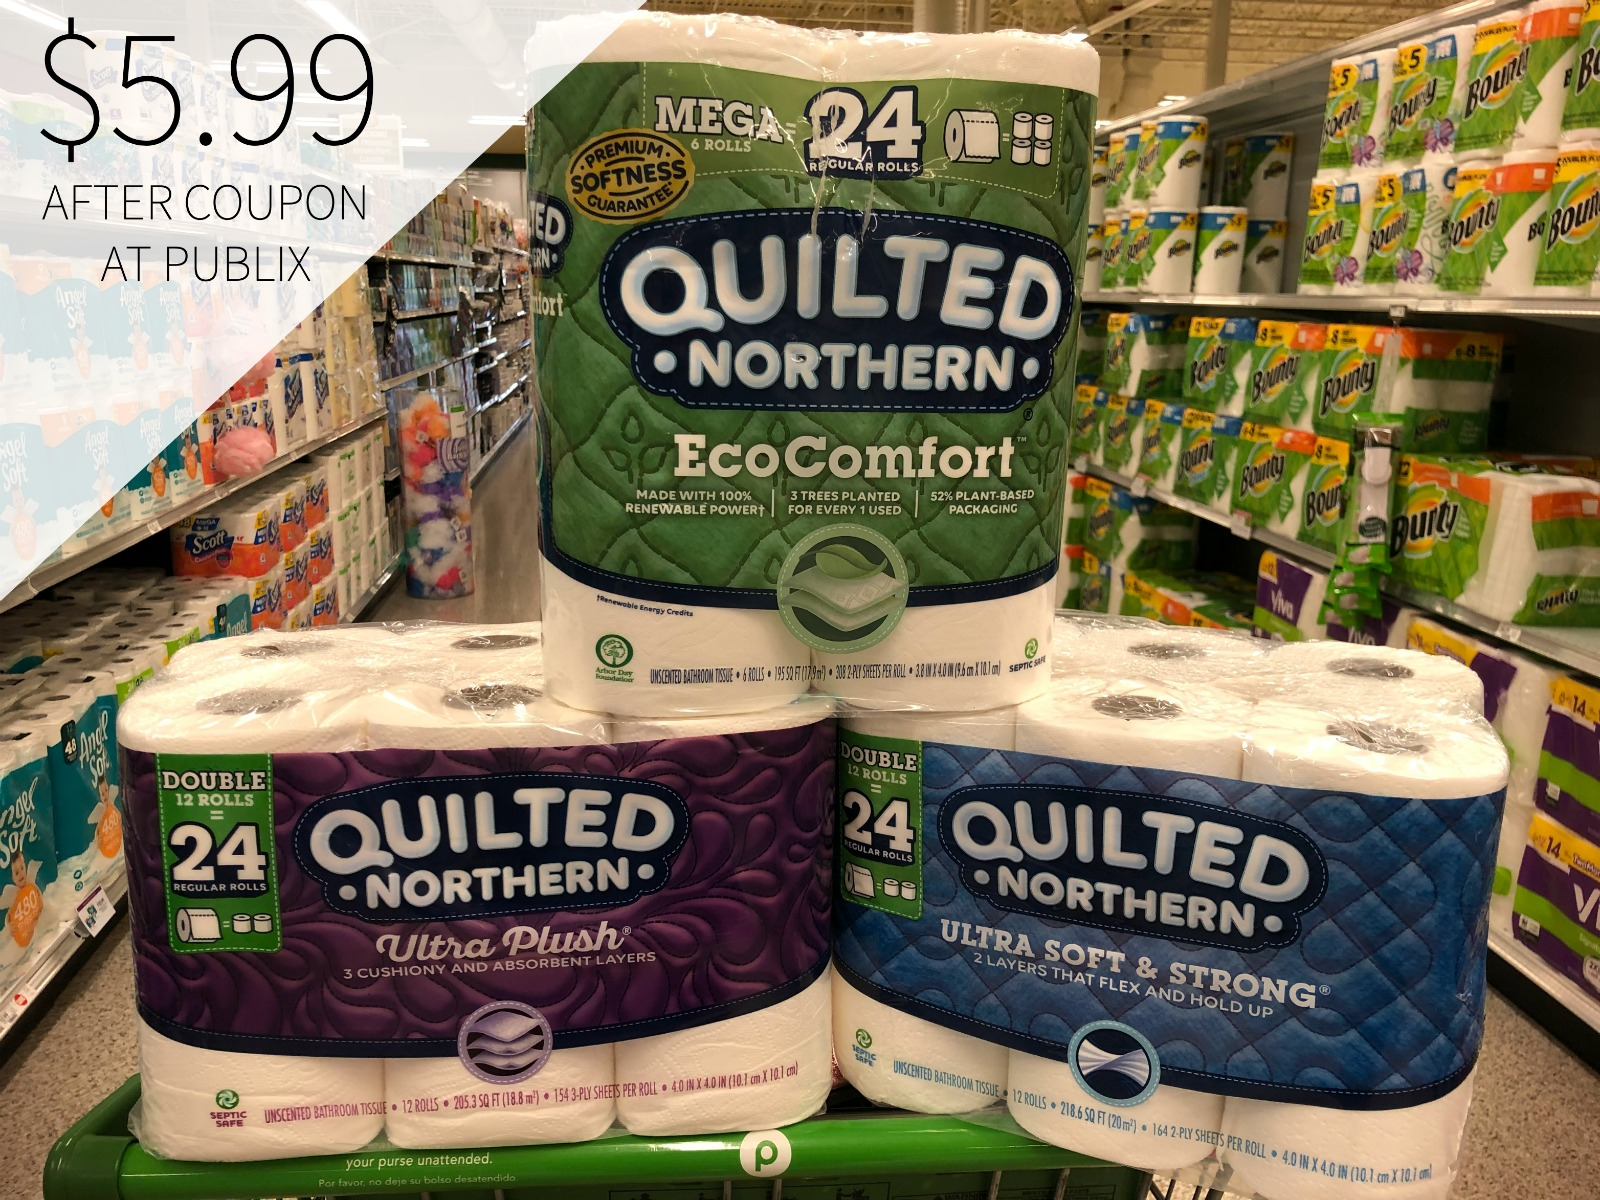 Awesome Deal On Quilted Northern® Bathroom Tissue This Week At Publix on I Heart Publix 1